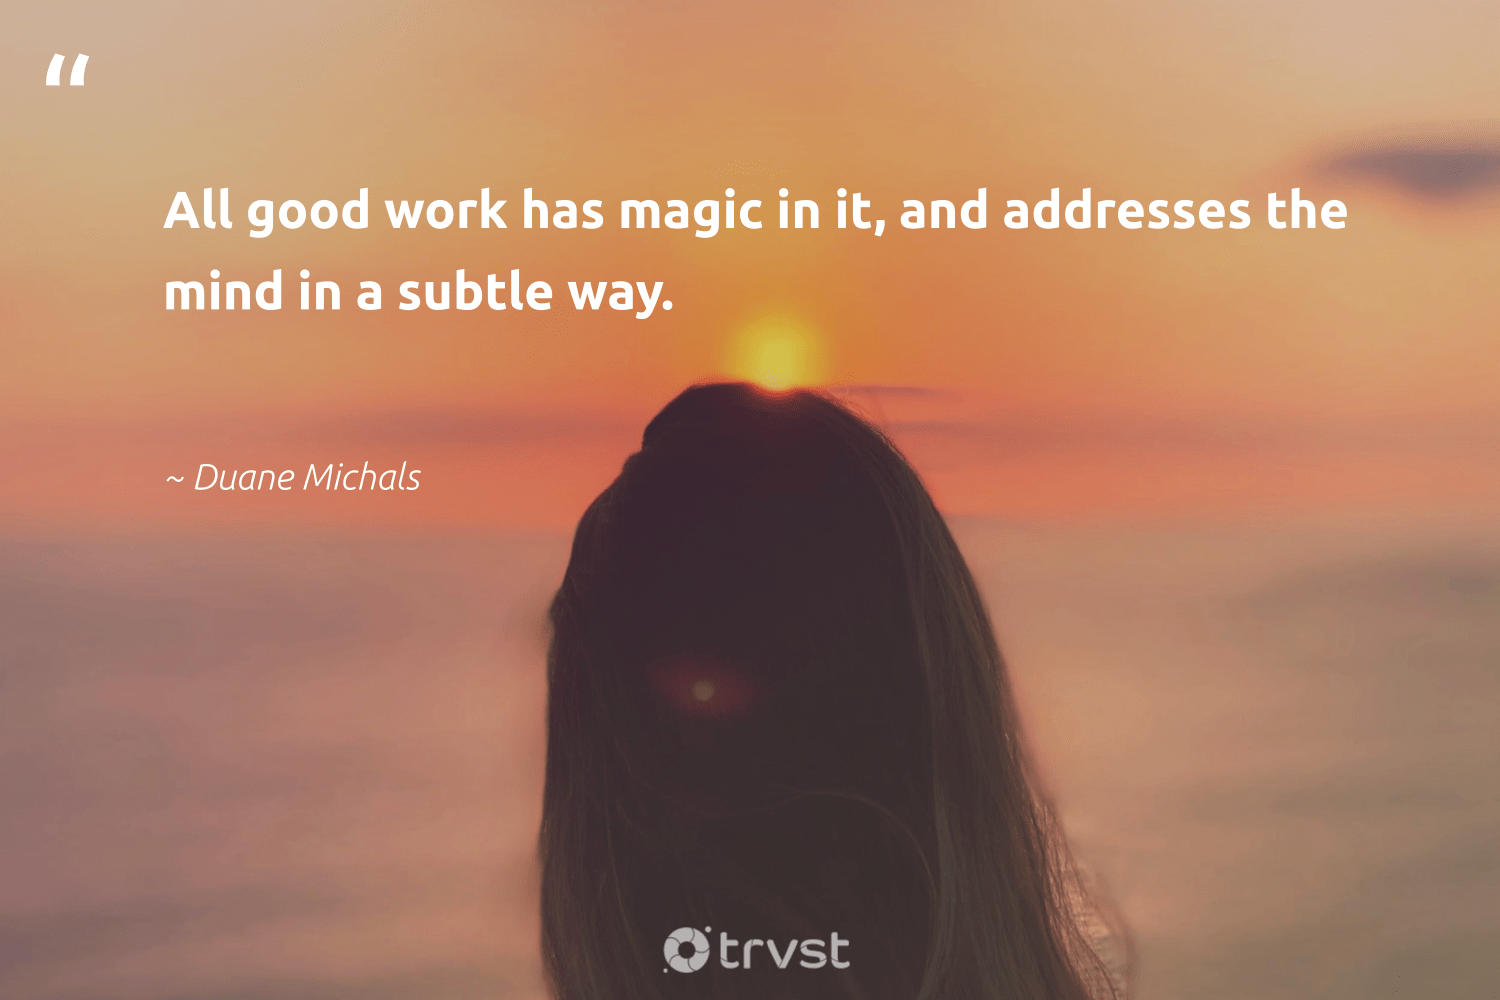 """All good work has magic in it, and addresses the mind in a subtle way.""  - Duane Michals #trvst #quotes #nevergiveup #planetearthfirst #begreat #socialchange #softskills #socialimpact #futureofwork #dogood #bethechange #collectiveaction"